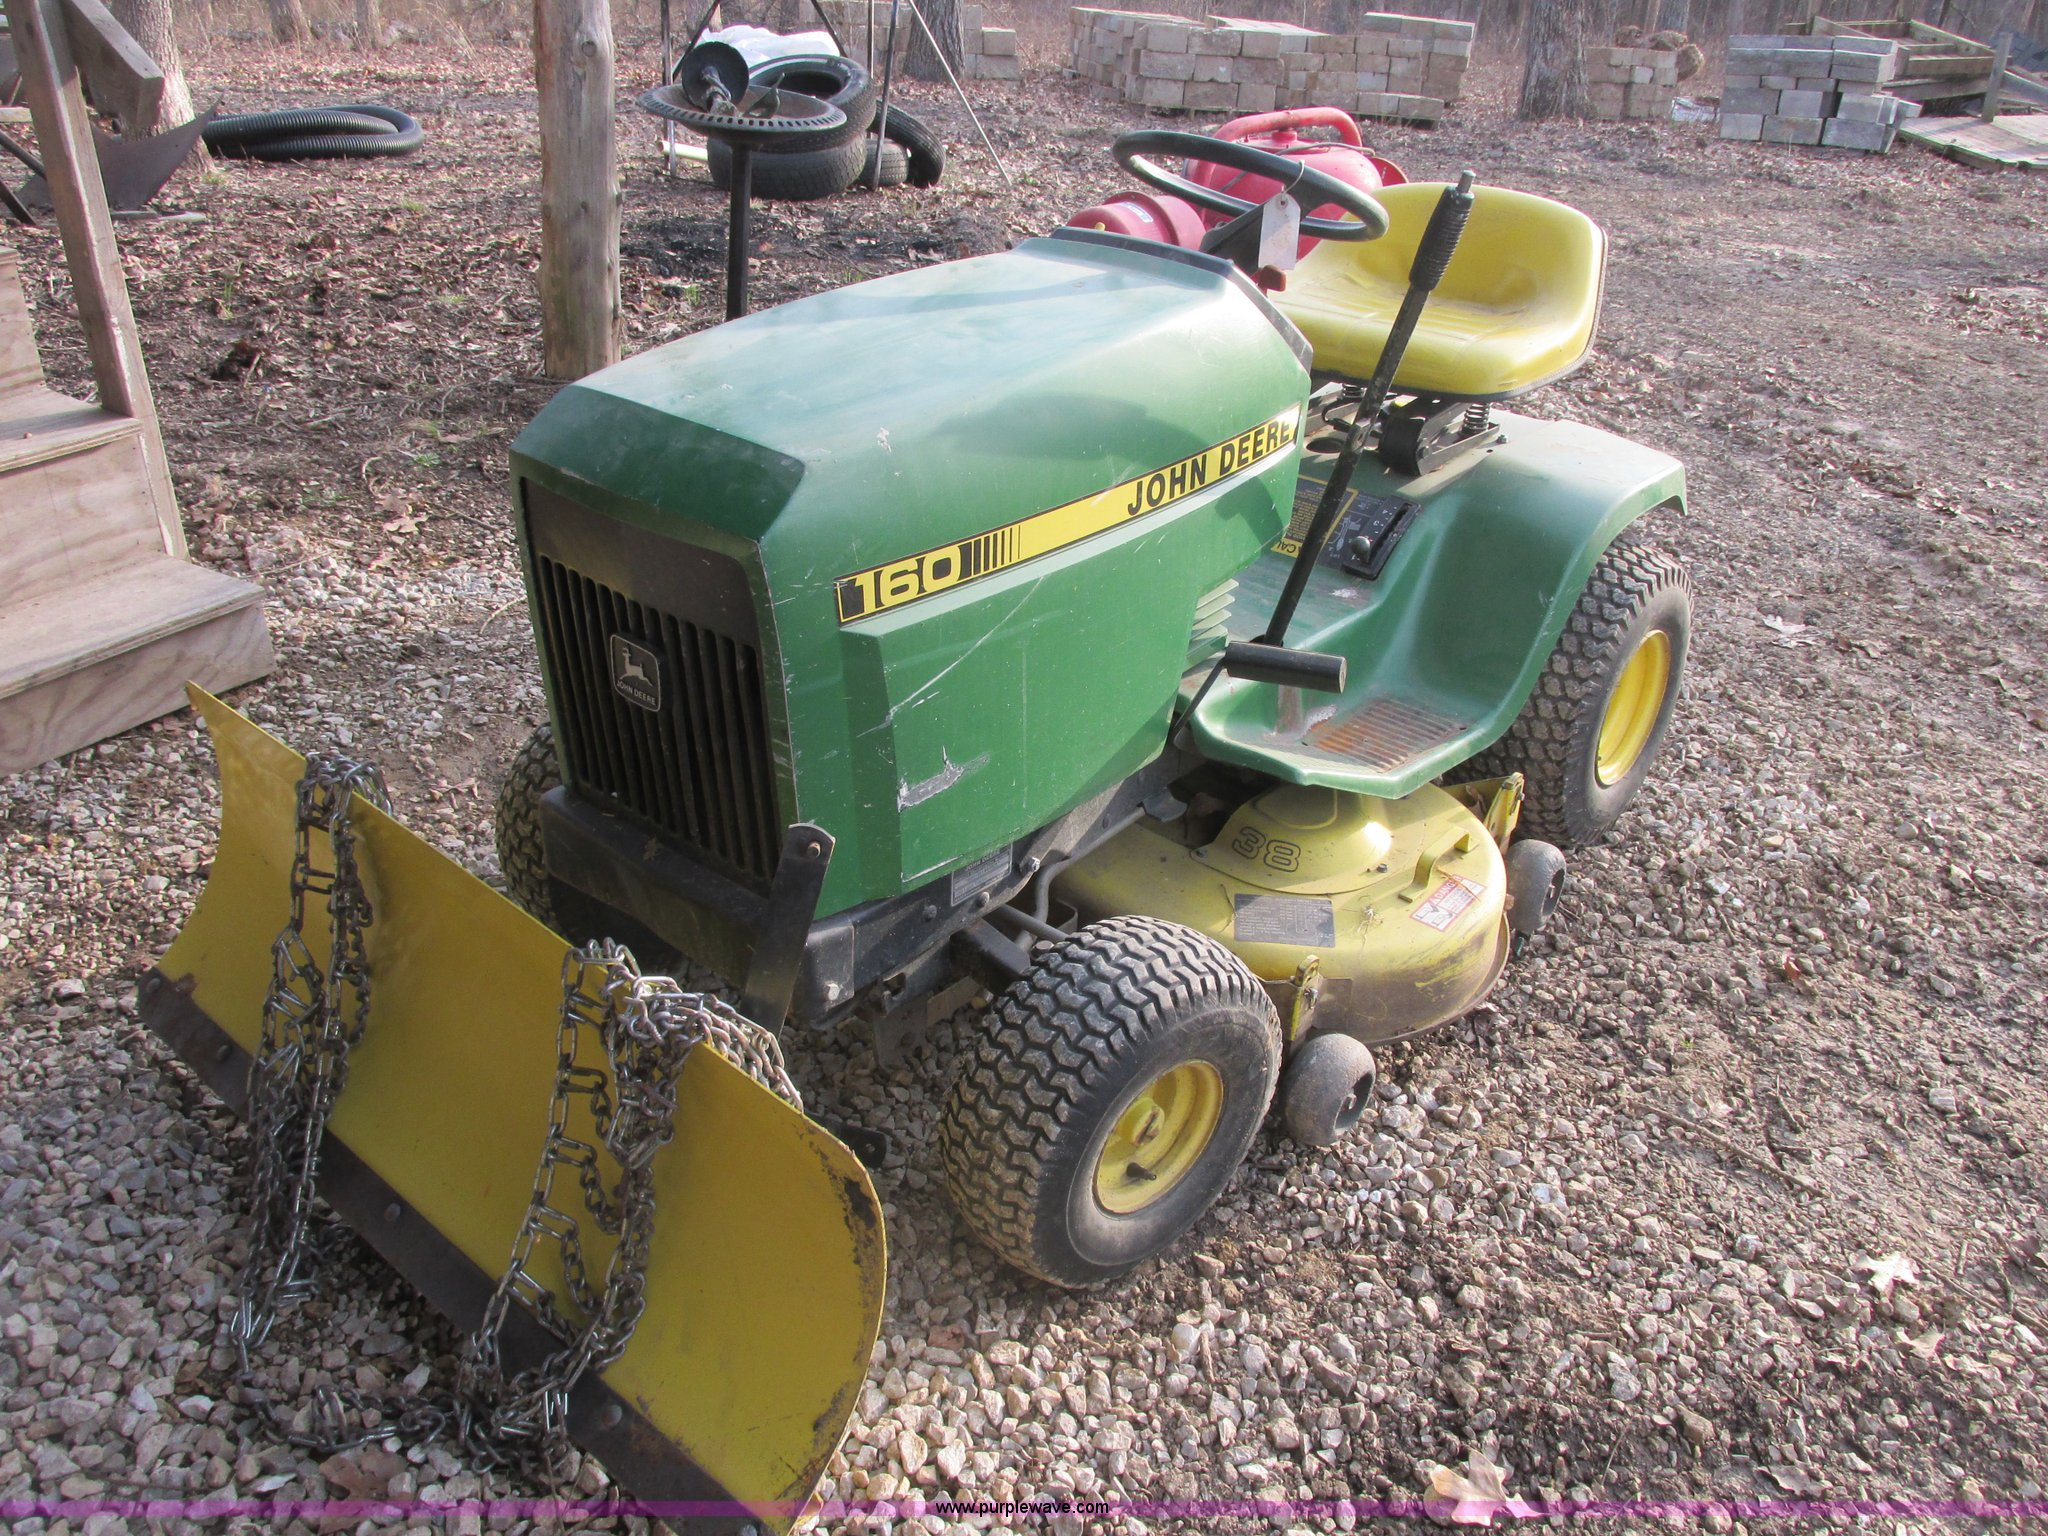 John Deere 160 mower | Item AB9416 | SOLD! May 1 Midwest Auc